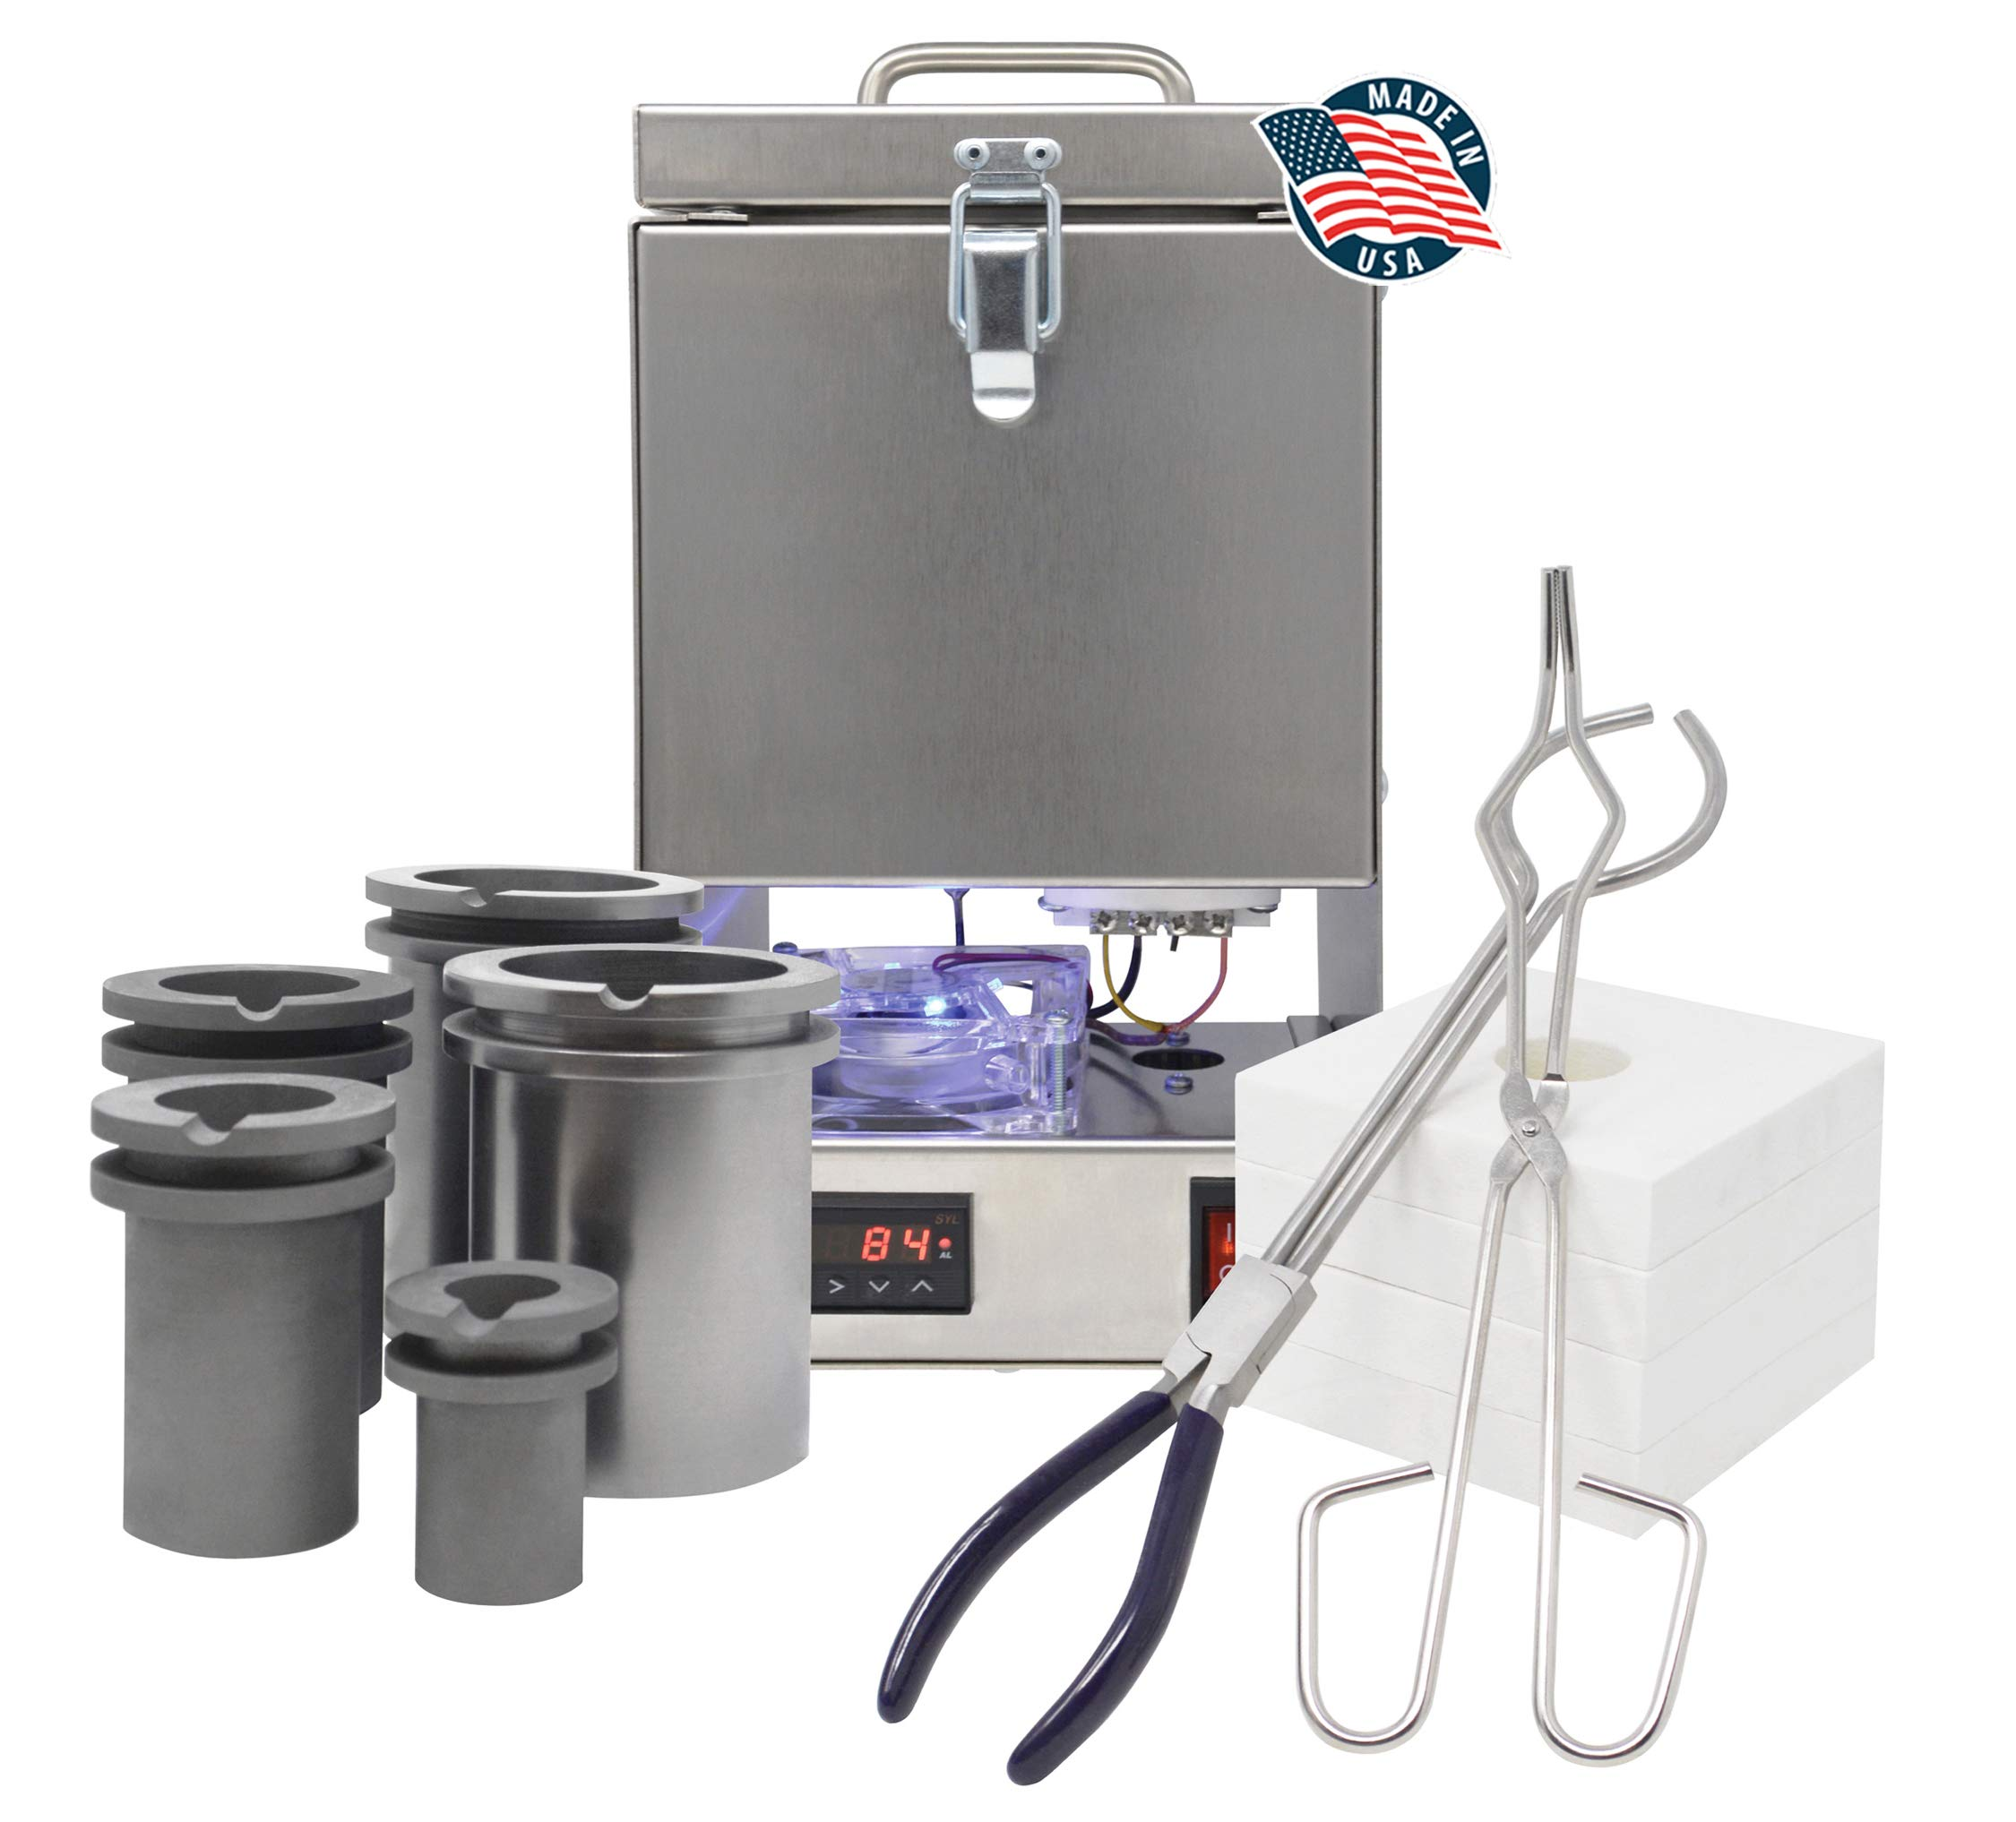 Tabletop Deluxe QuikMelt Top-Loading Electric Furnace Crucibles Tongs Flanges Metal Jewelry Casting Melting Kiln Made in The U.S.A.